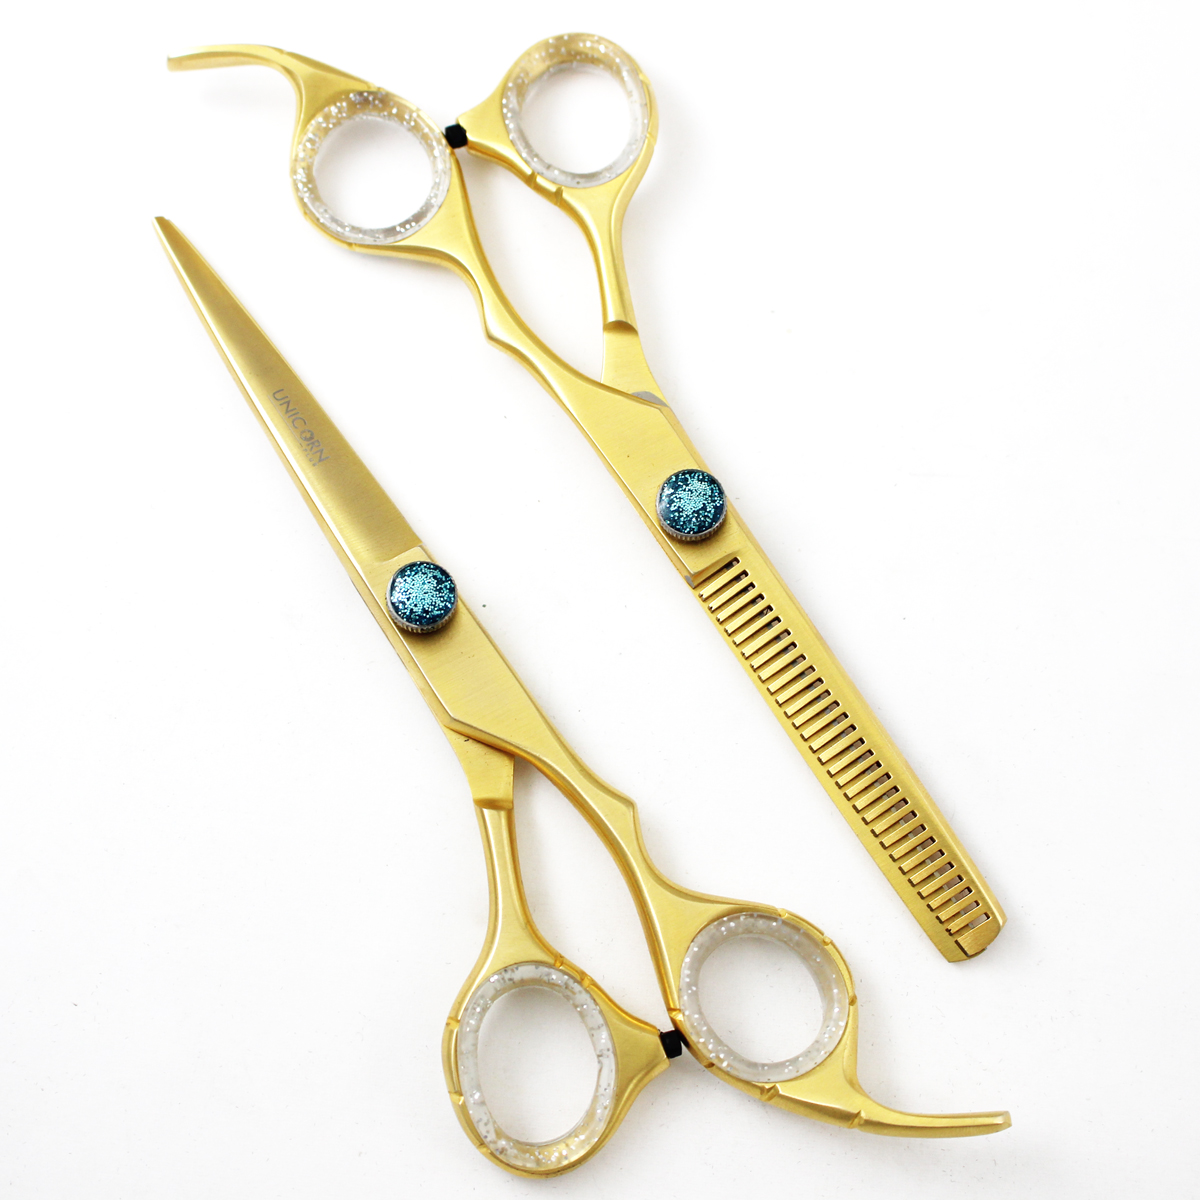 Professional Barber Hair Cutting Shears Set in Gold Color ...